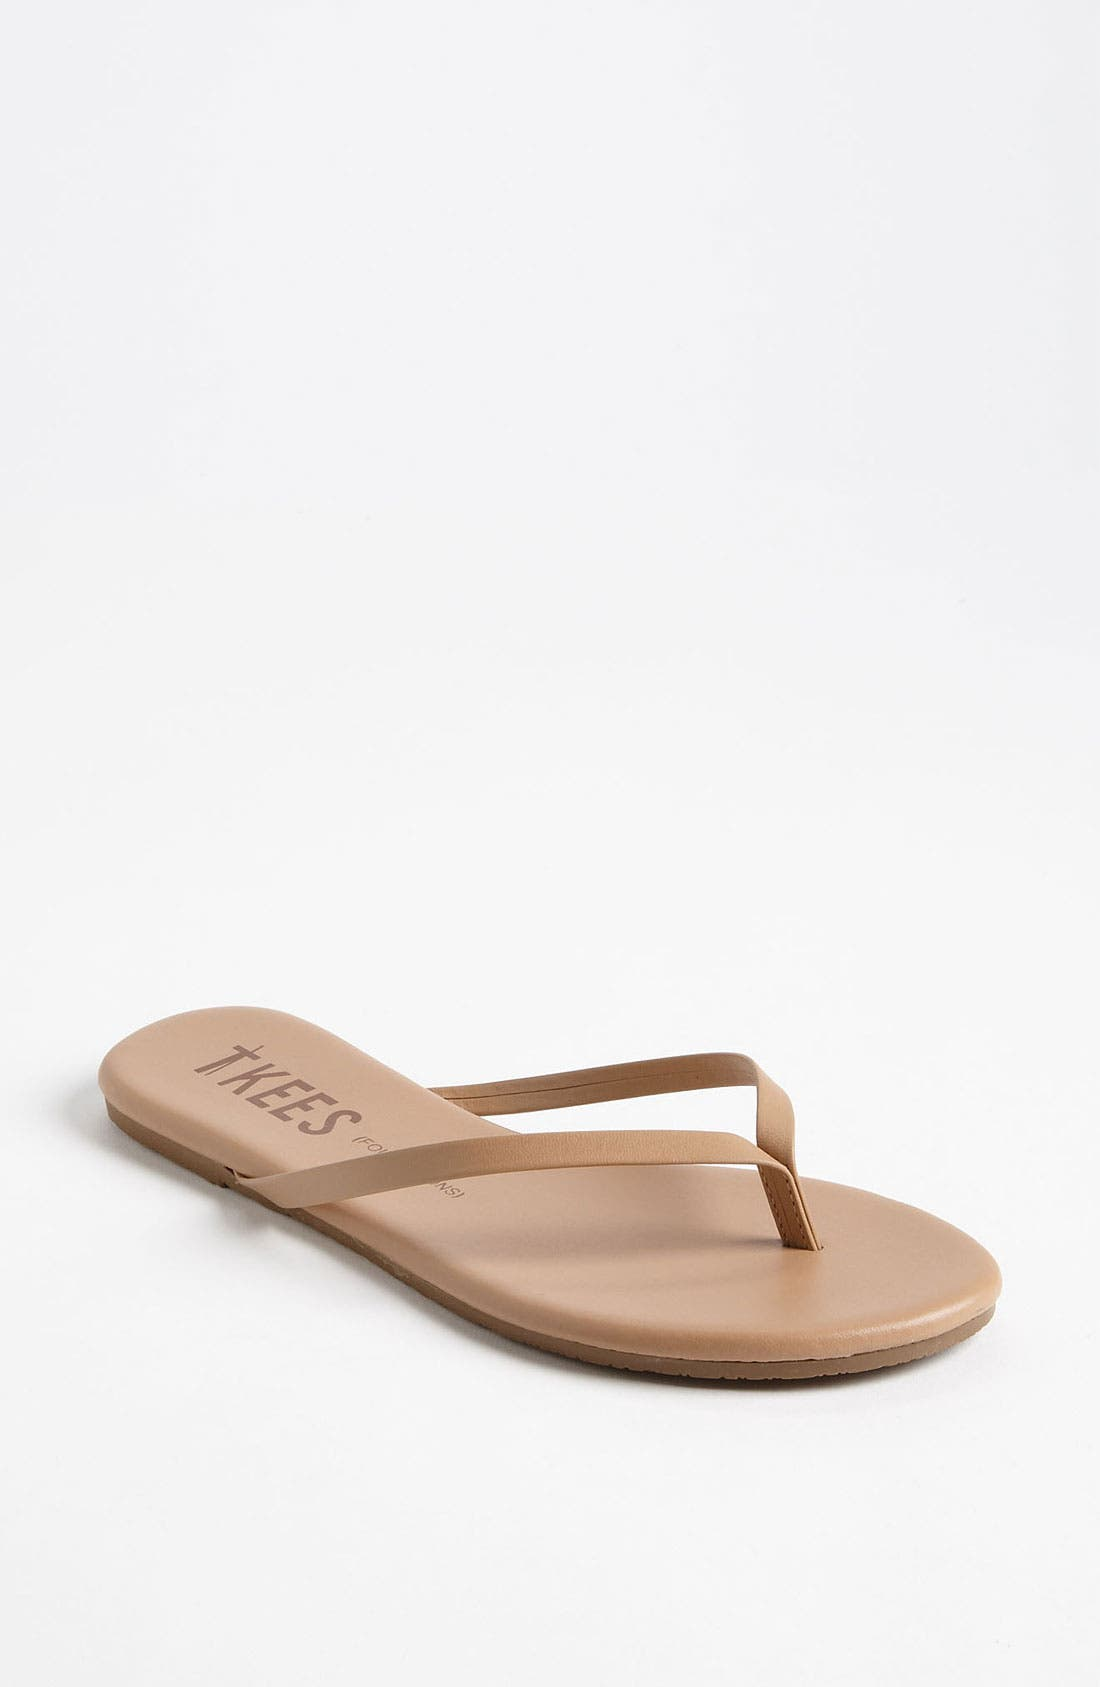 TKEES 'Foundations' Flip Flop